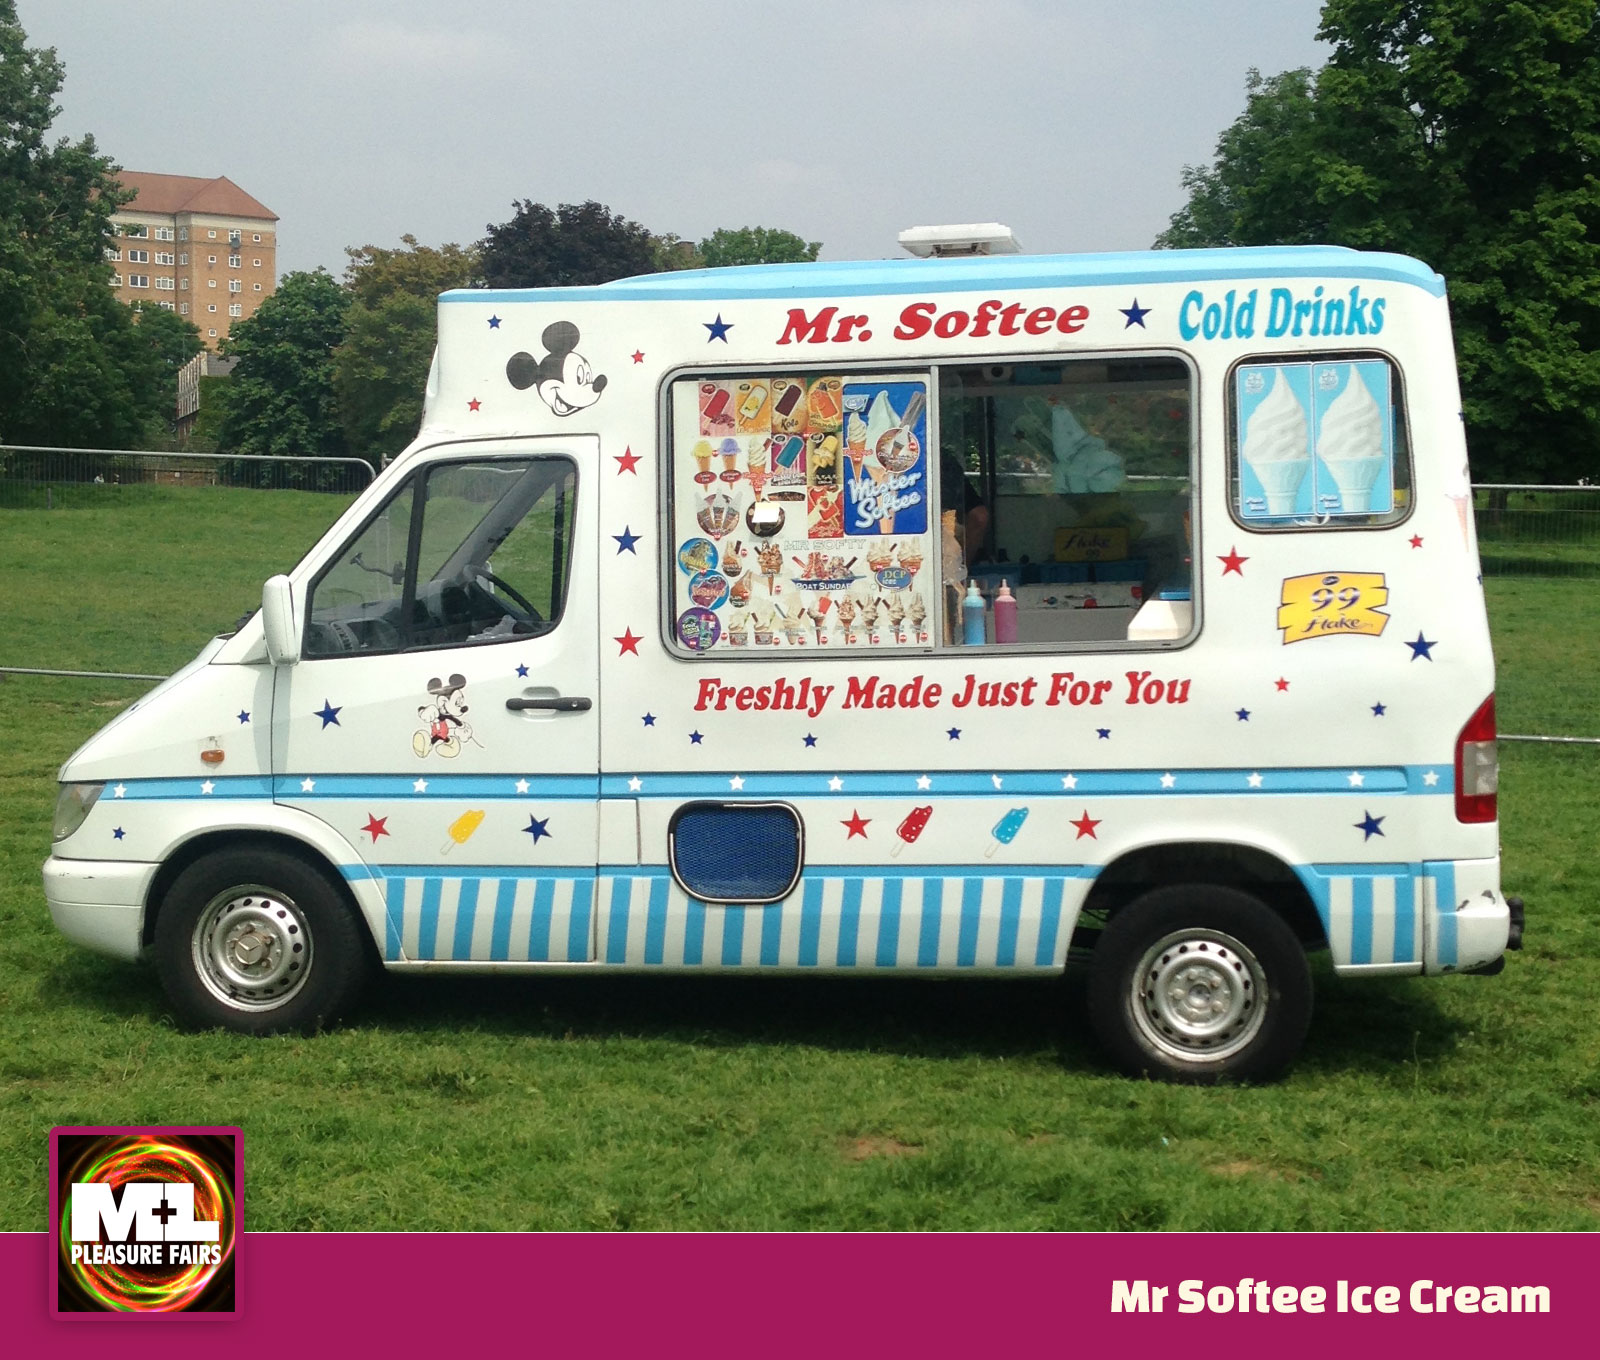 Mr Softee